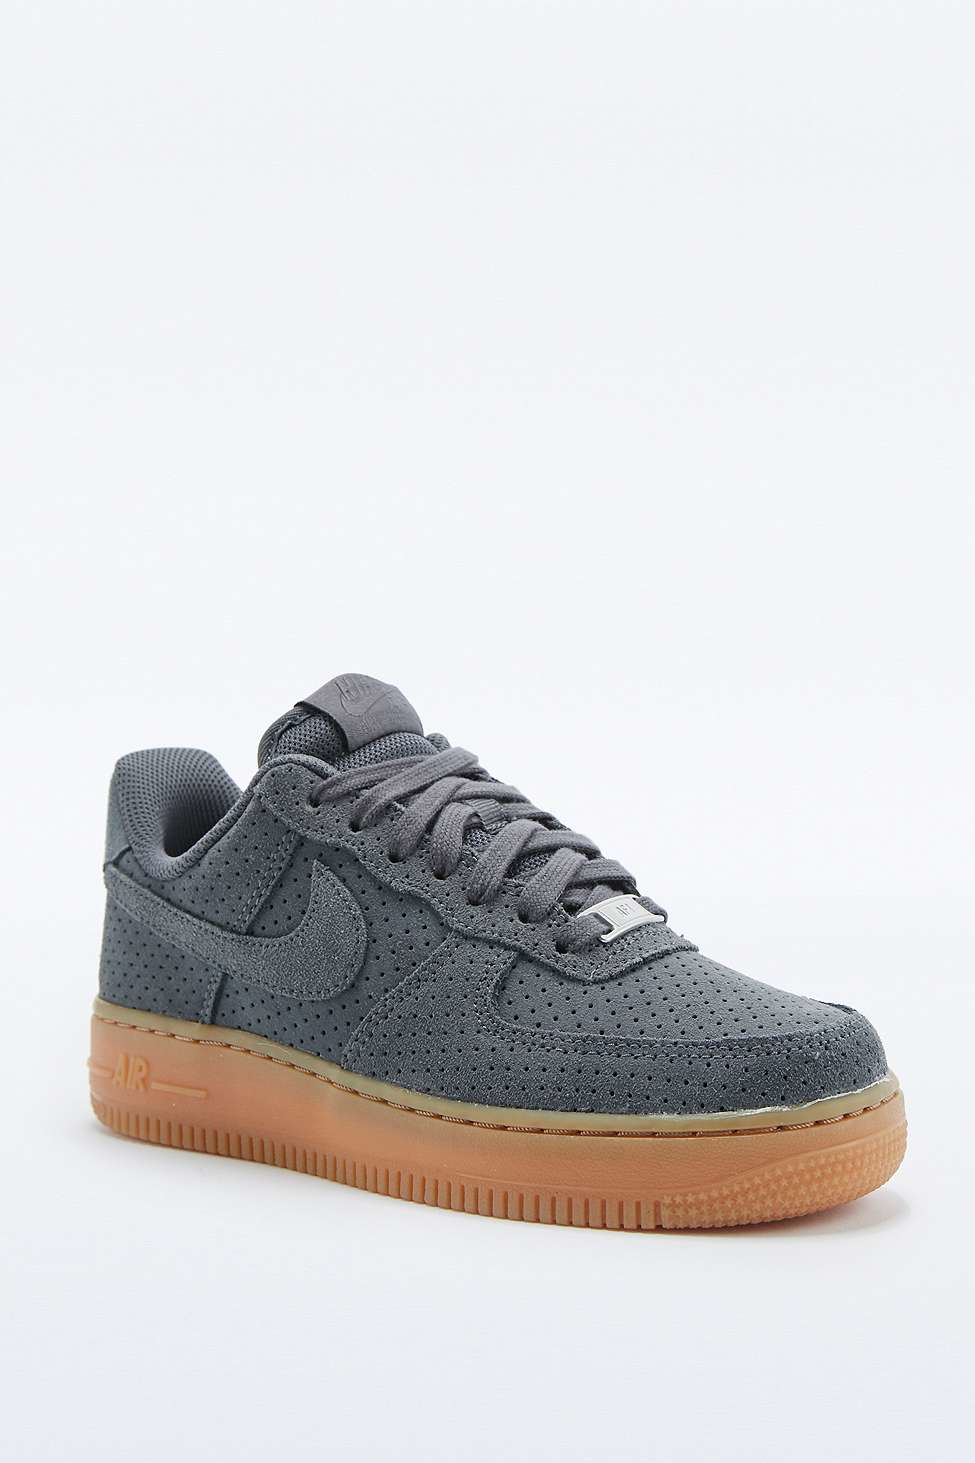 nike air force 1 low urban outfitters